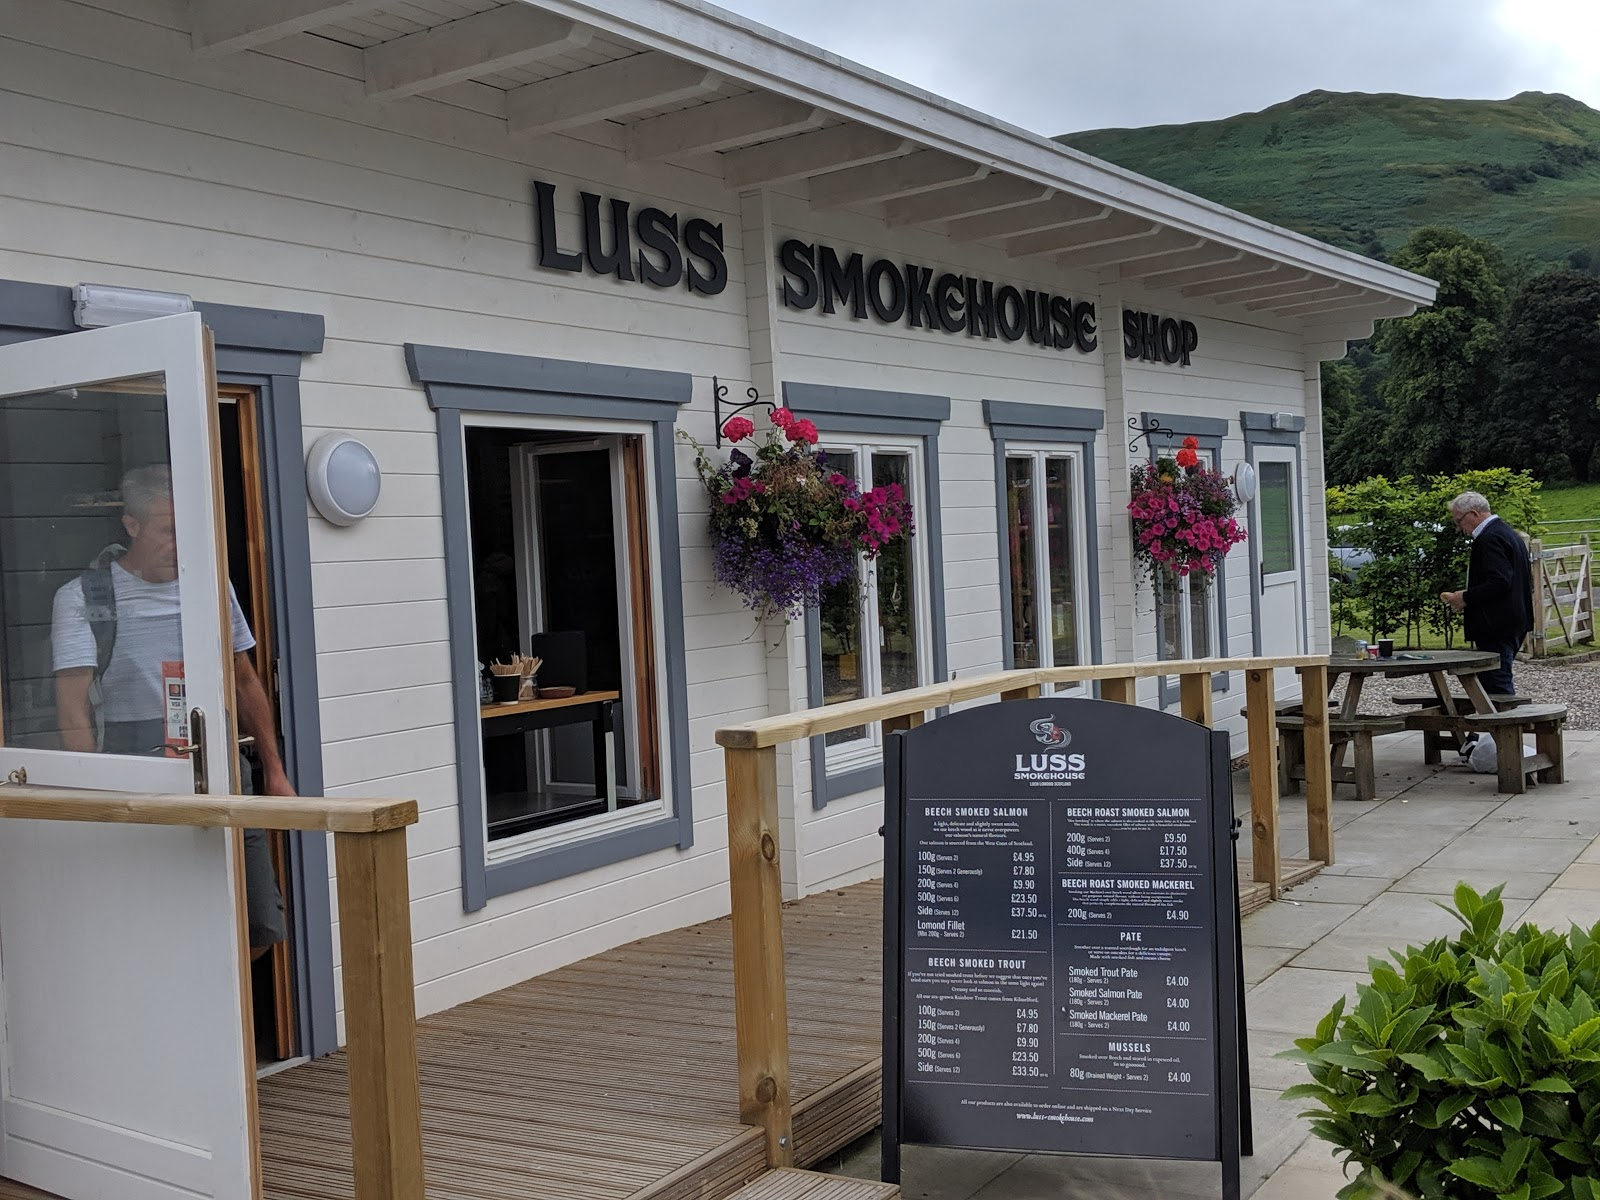 A Short Break at Cameron Lodges, Loch Lomond - Luss - smokehouse